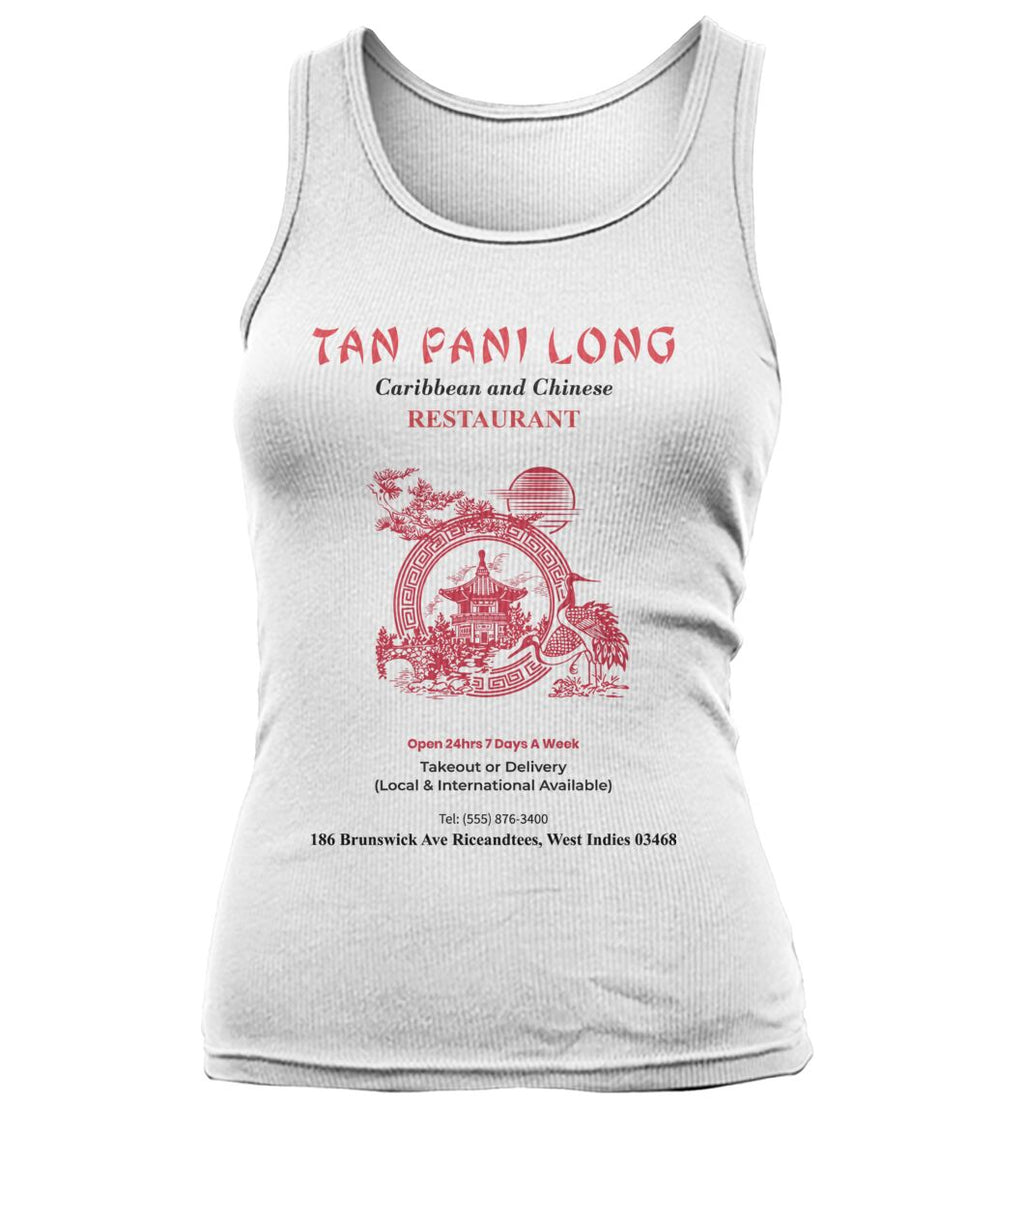 Tan Pani Long Restaurant Tank Top Women's Tank Top